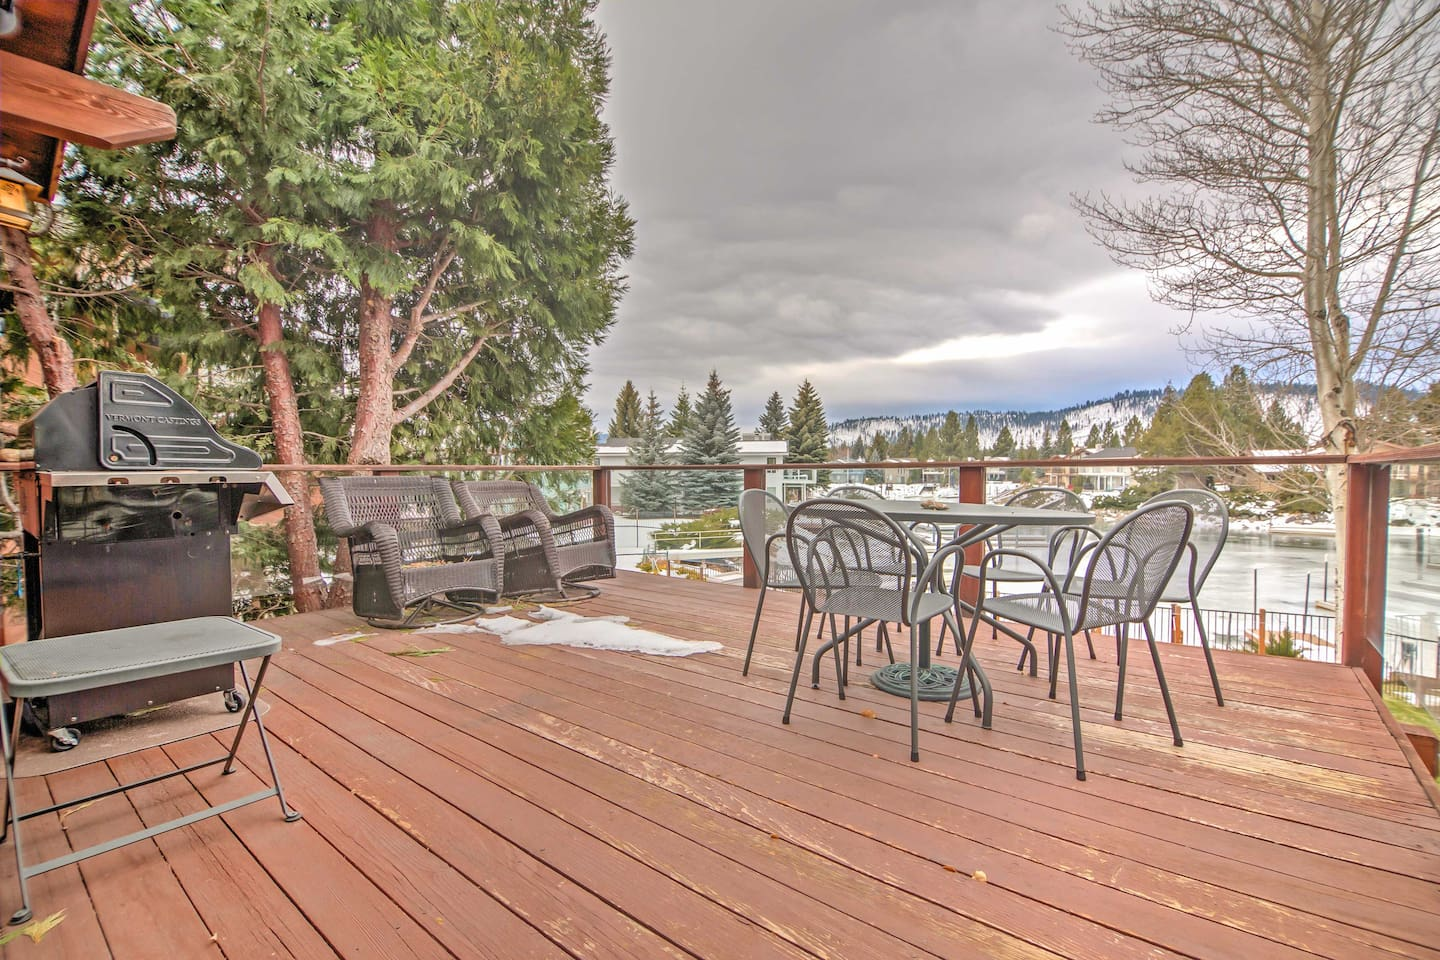 Book this 3-bedroom, 2.5-bath South Lake Tahoe vacation rental for your getaway!